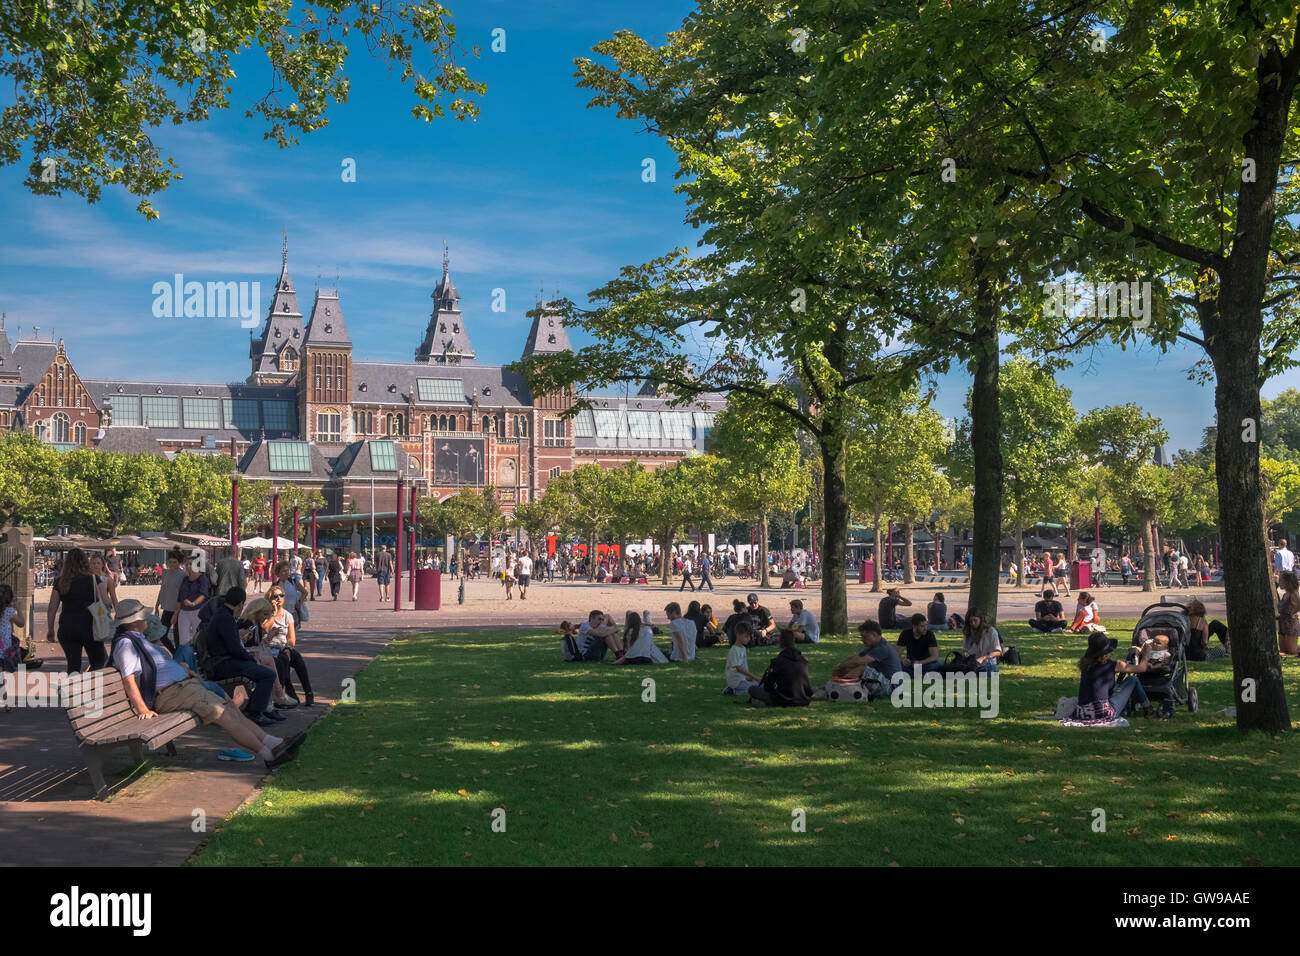 People relaxing on a warm sunny day near the landmark Rijks Museum building, Amsterdam, Netherlands - Stock Image